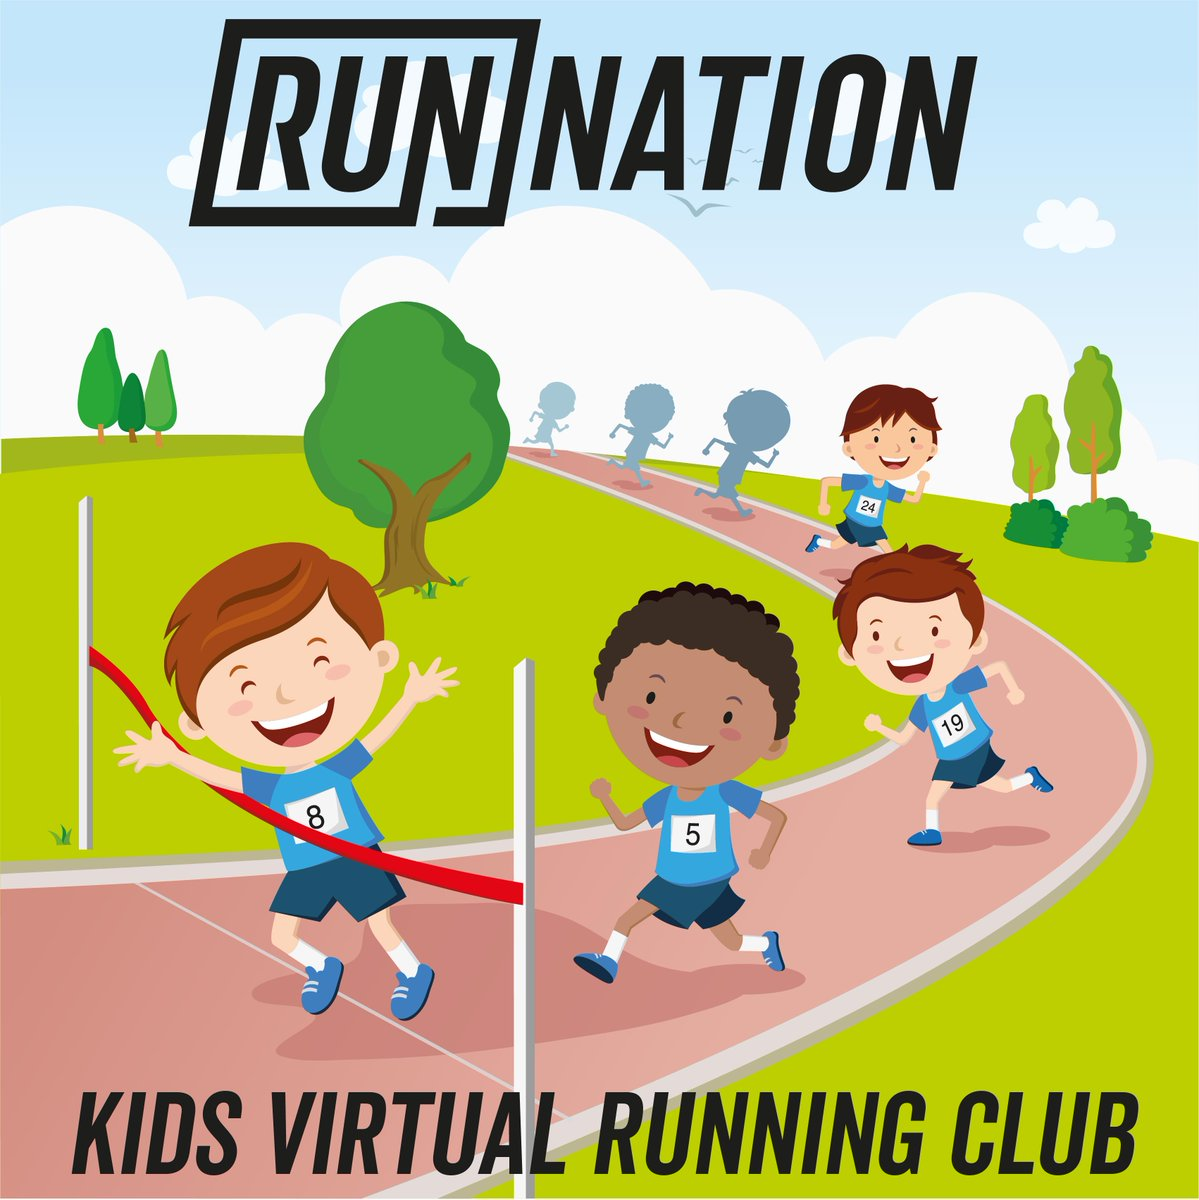 Running through Coronavirus - https://mailchi.mp/runnation.co.uk/running-through-coronavirus … our virtual challenge for adults and children during these difficult times #virtualrun #kidsrun #runlondon #runnation #runningpic.twitter.com/fYBGKwSrTQ